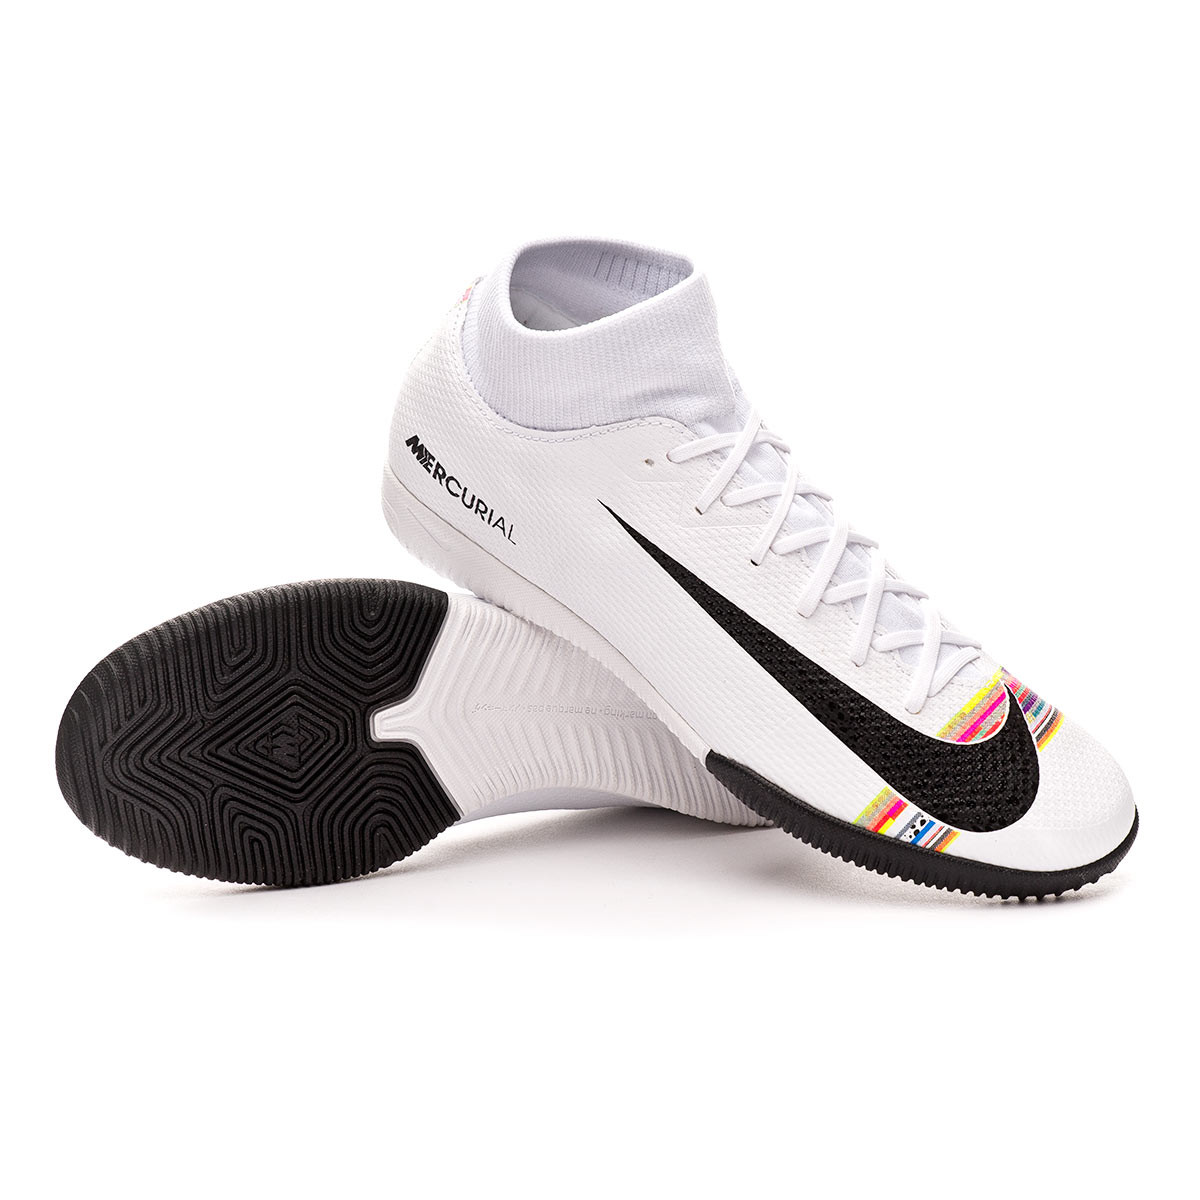 5c52576fd Nike Mercurial SuperflyX VI Academy LVL UP IC Futsal Boot. White-Black-Pure  ...